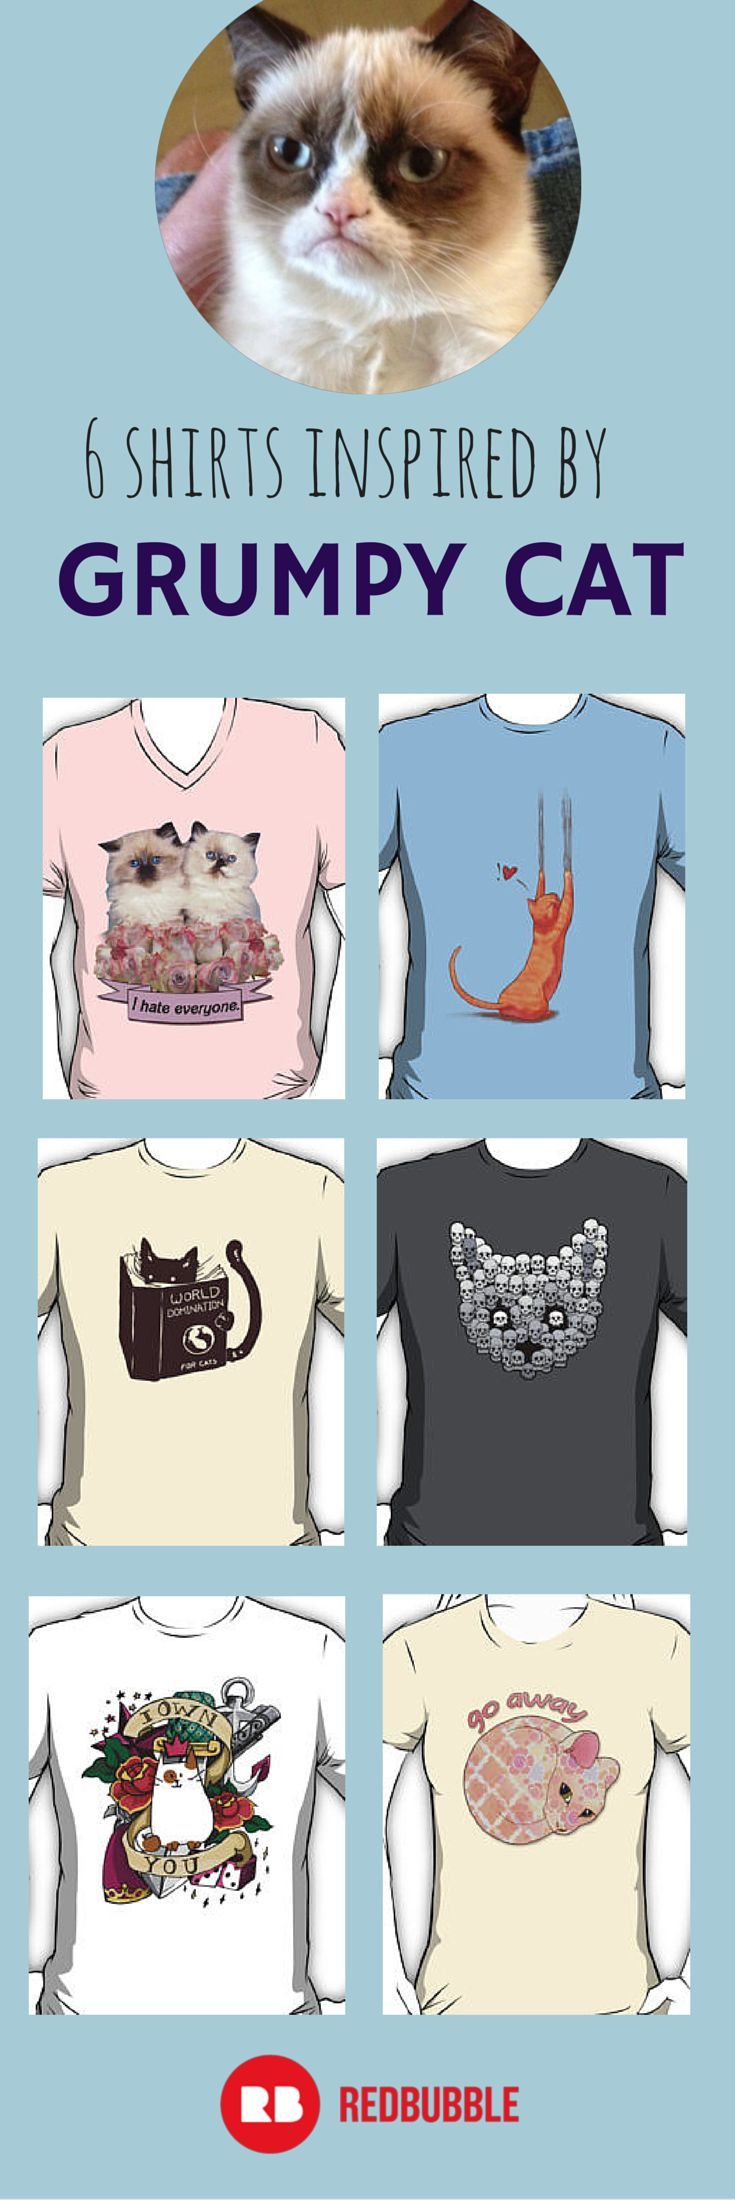 In honor of national cat day, we're giving you collections of shirts inspired by internet celeb felines. If you're the grouchy type, #grumpycat may be your muse.